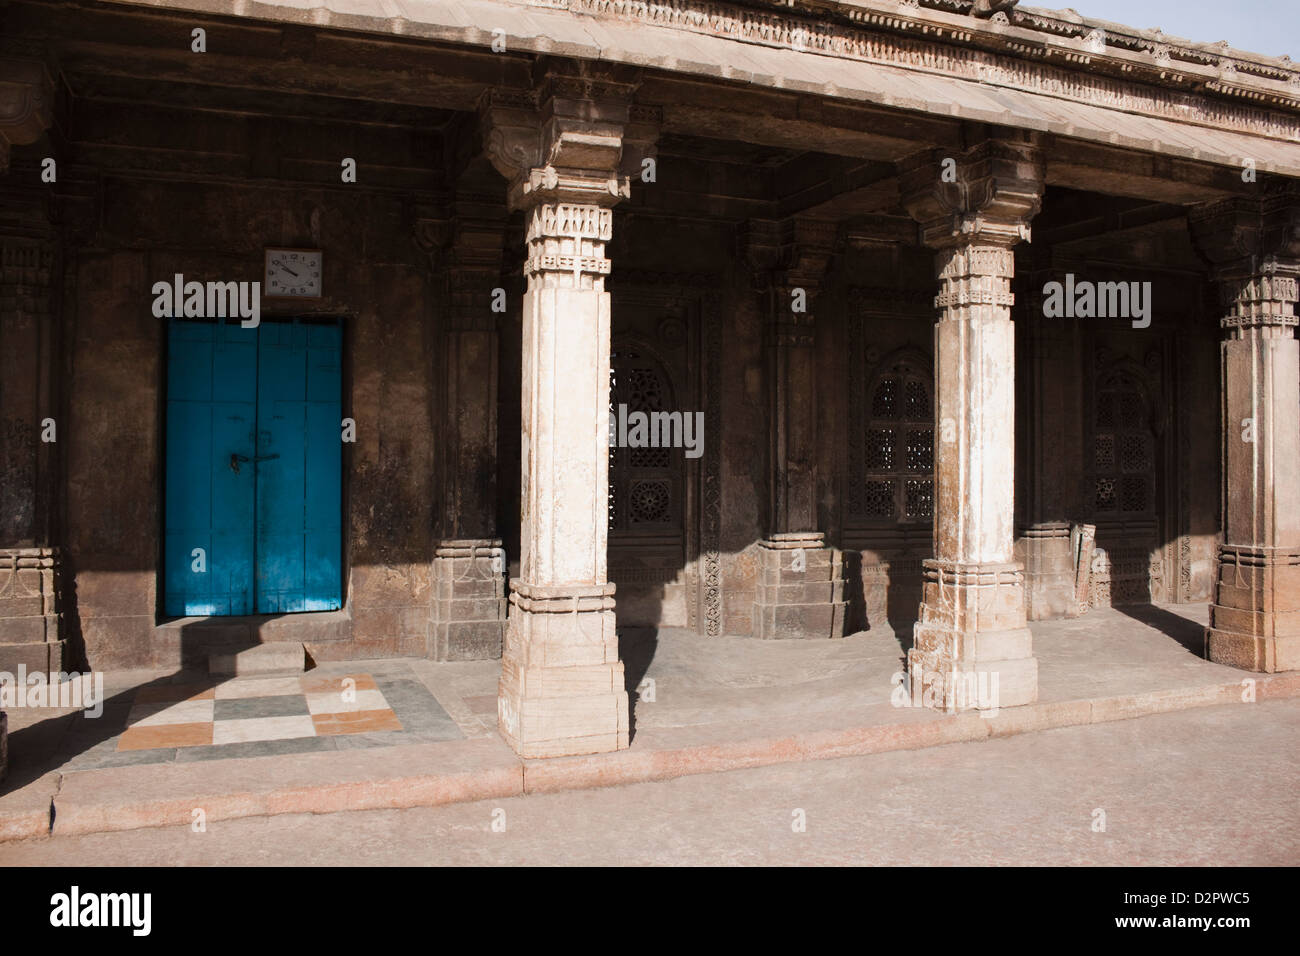 Colonnade in a mosque, Sayad Sidi Mosque, Ahmedabad, Gujarat, India - Stock Image